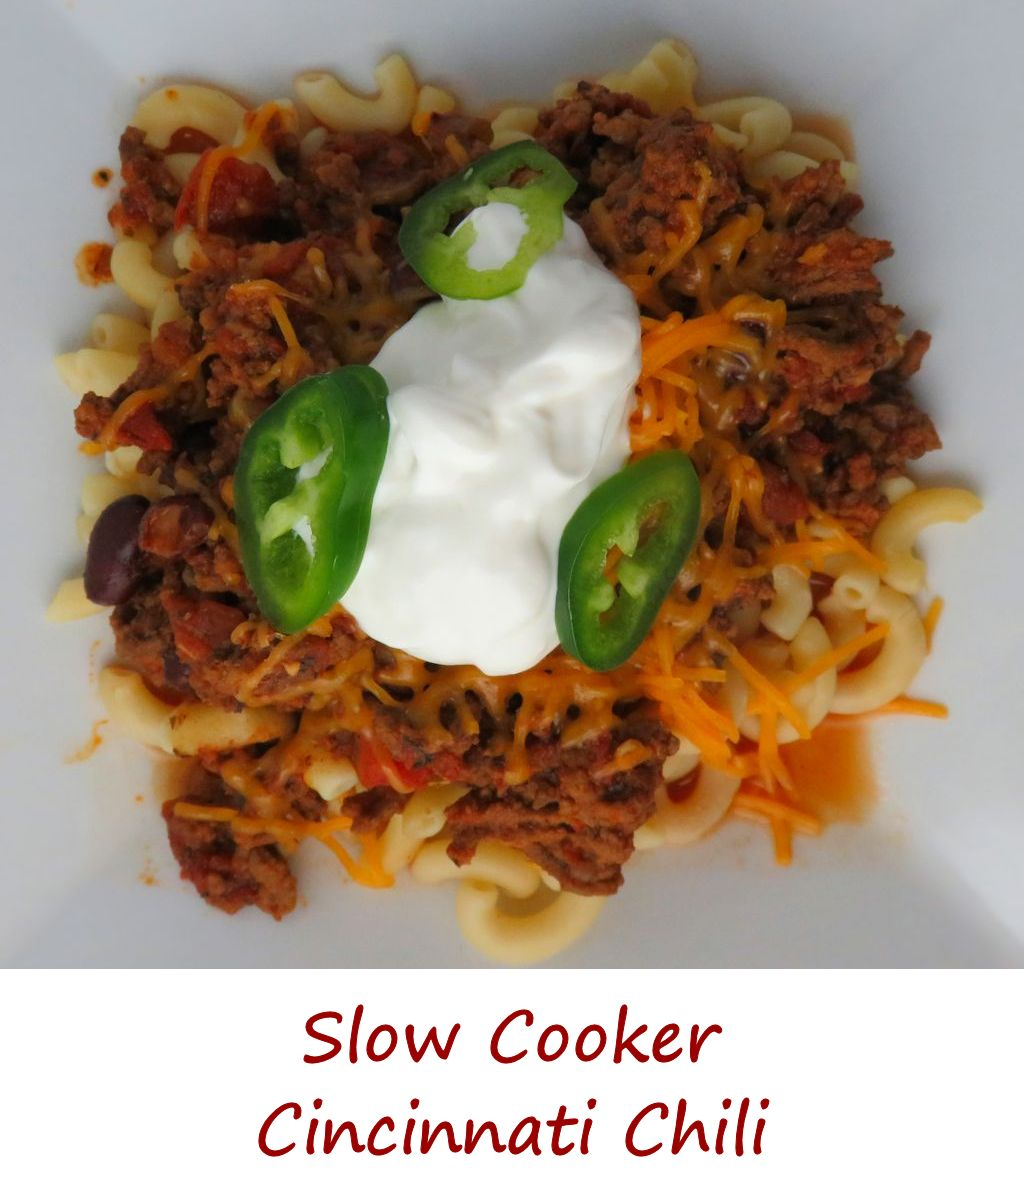 Slow Cooker Cincinnati Chili